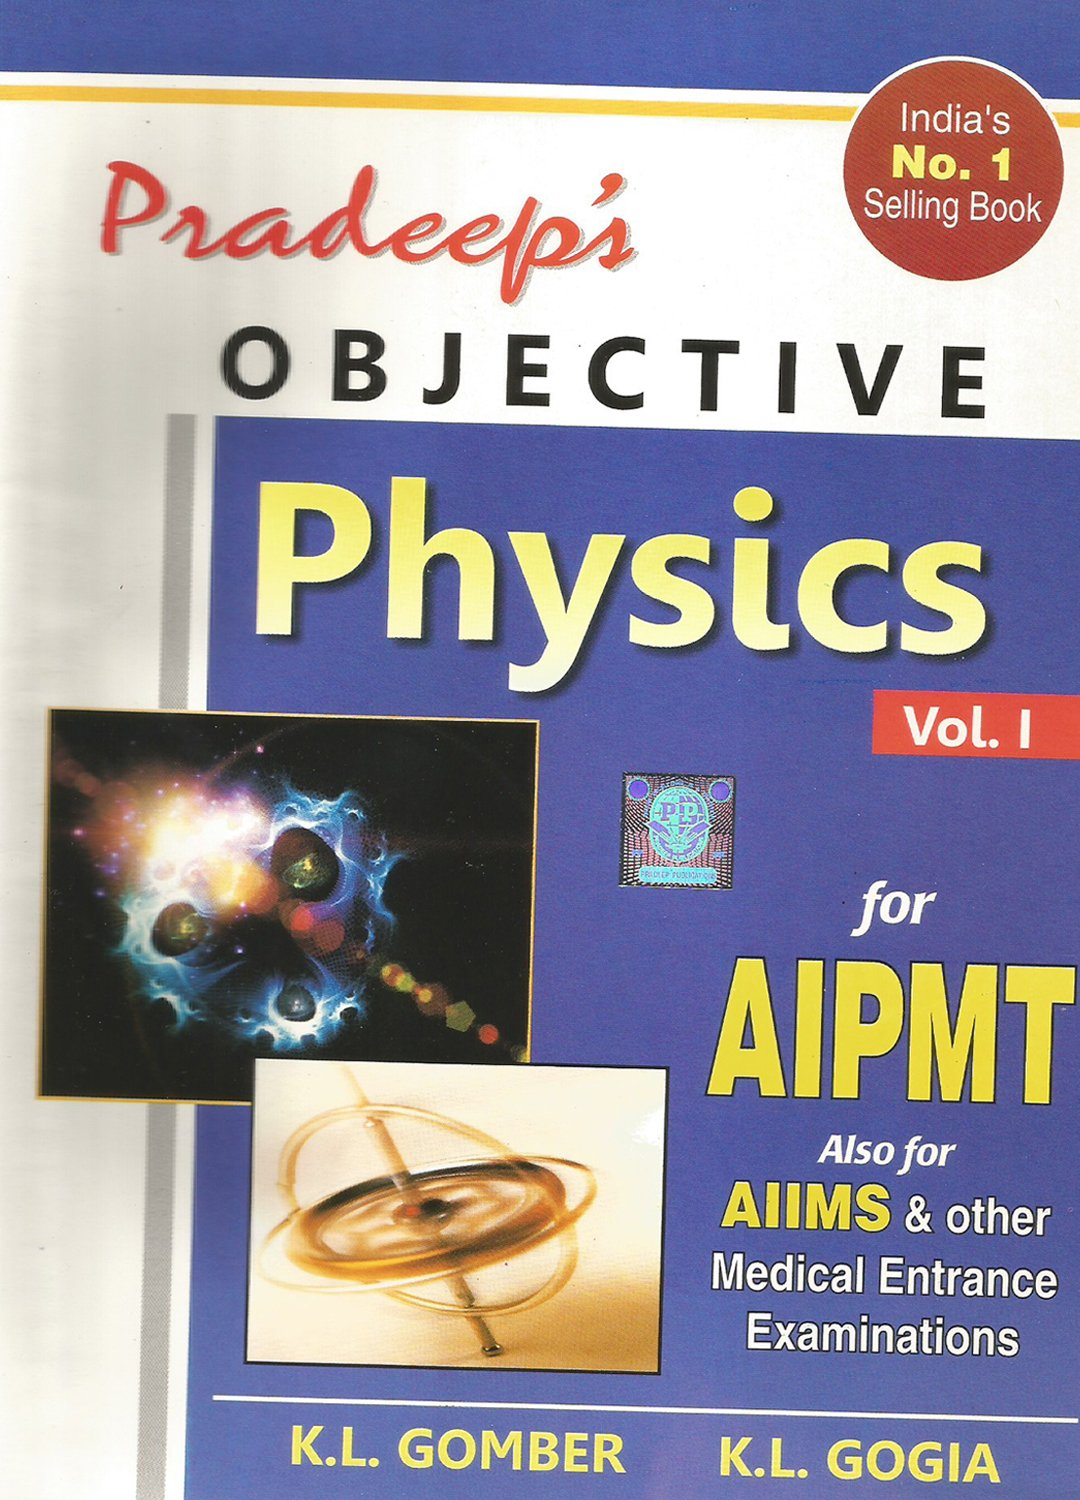 Pradeep s objective physics vol i ii for aipmt other medical entrance examinations amazon in books